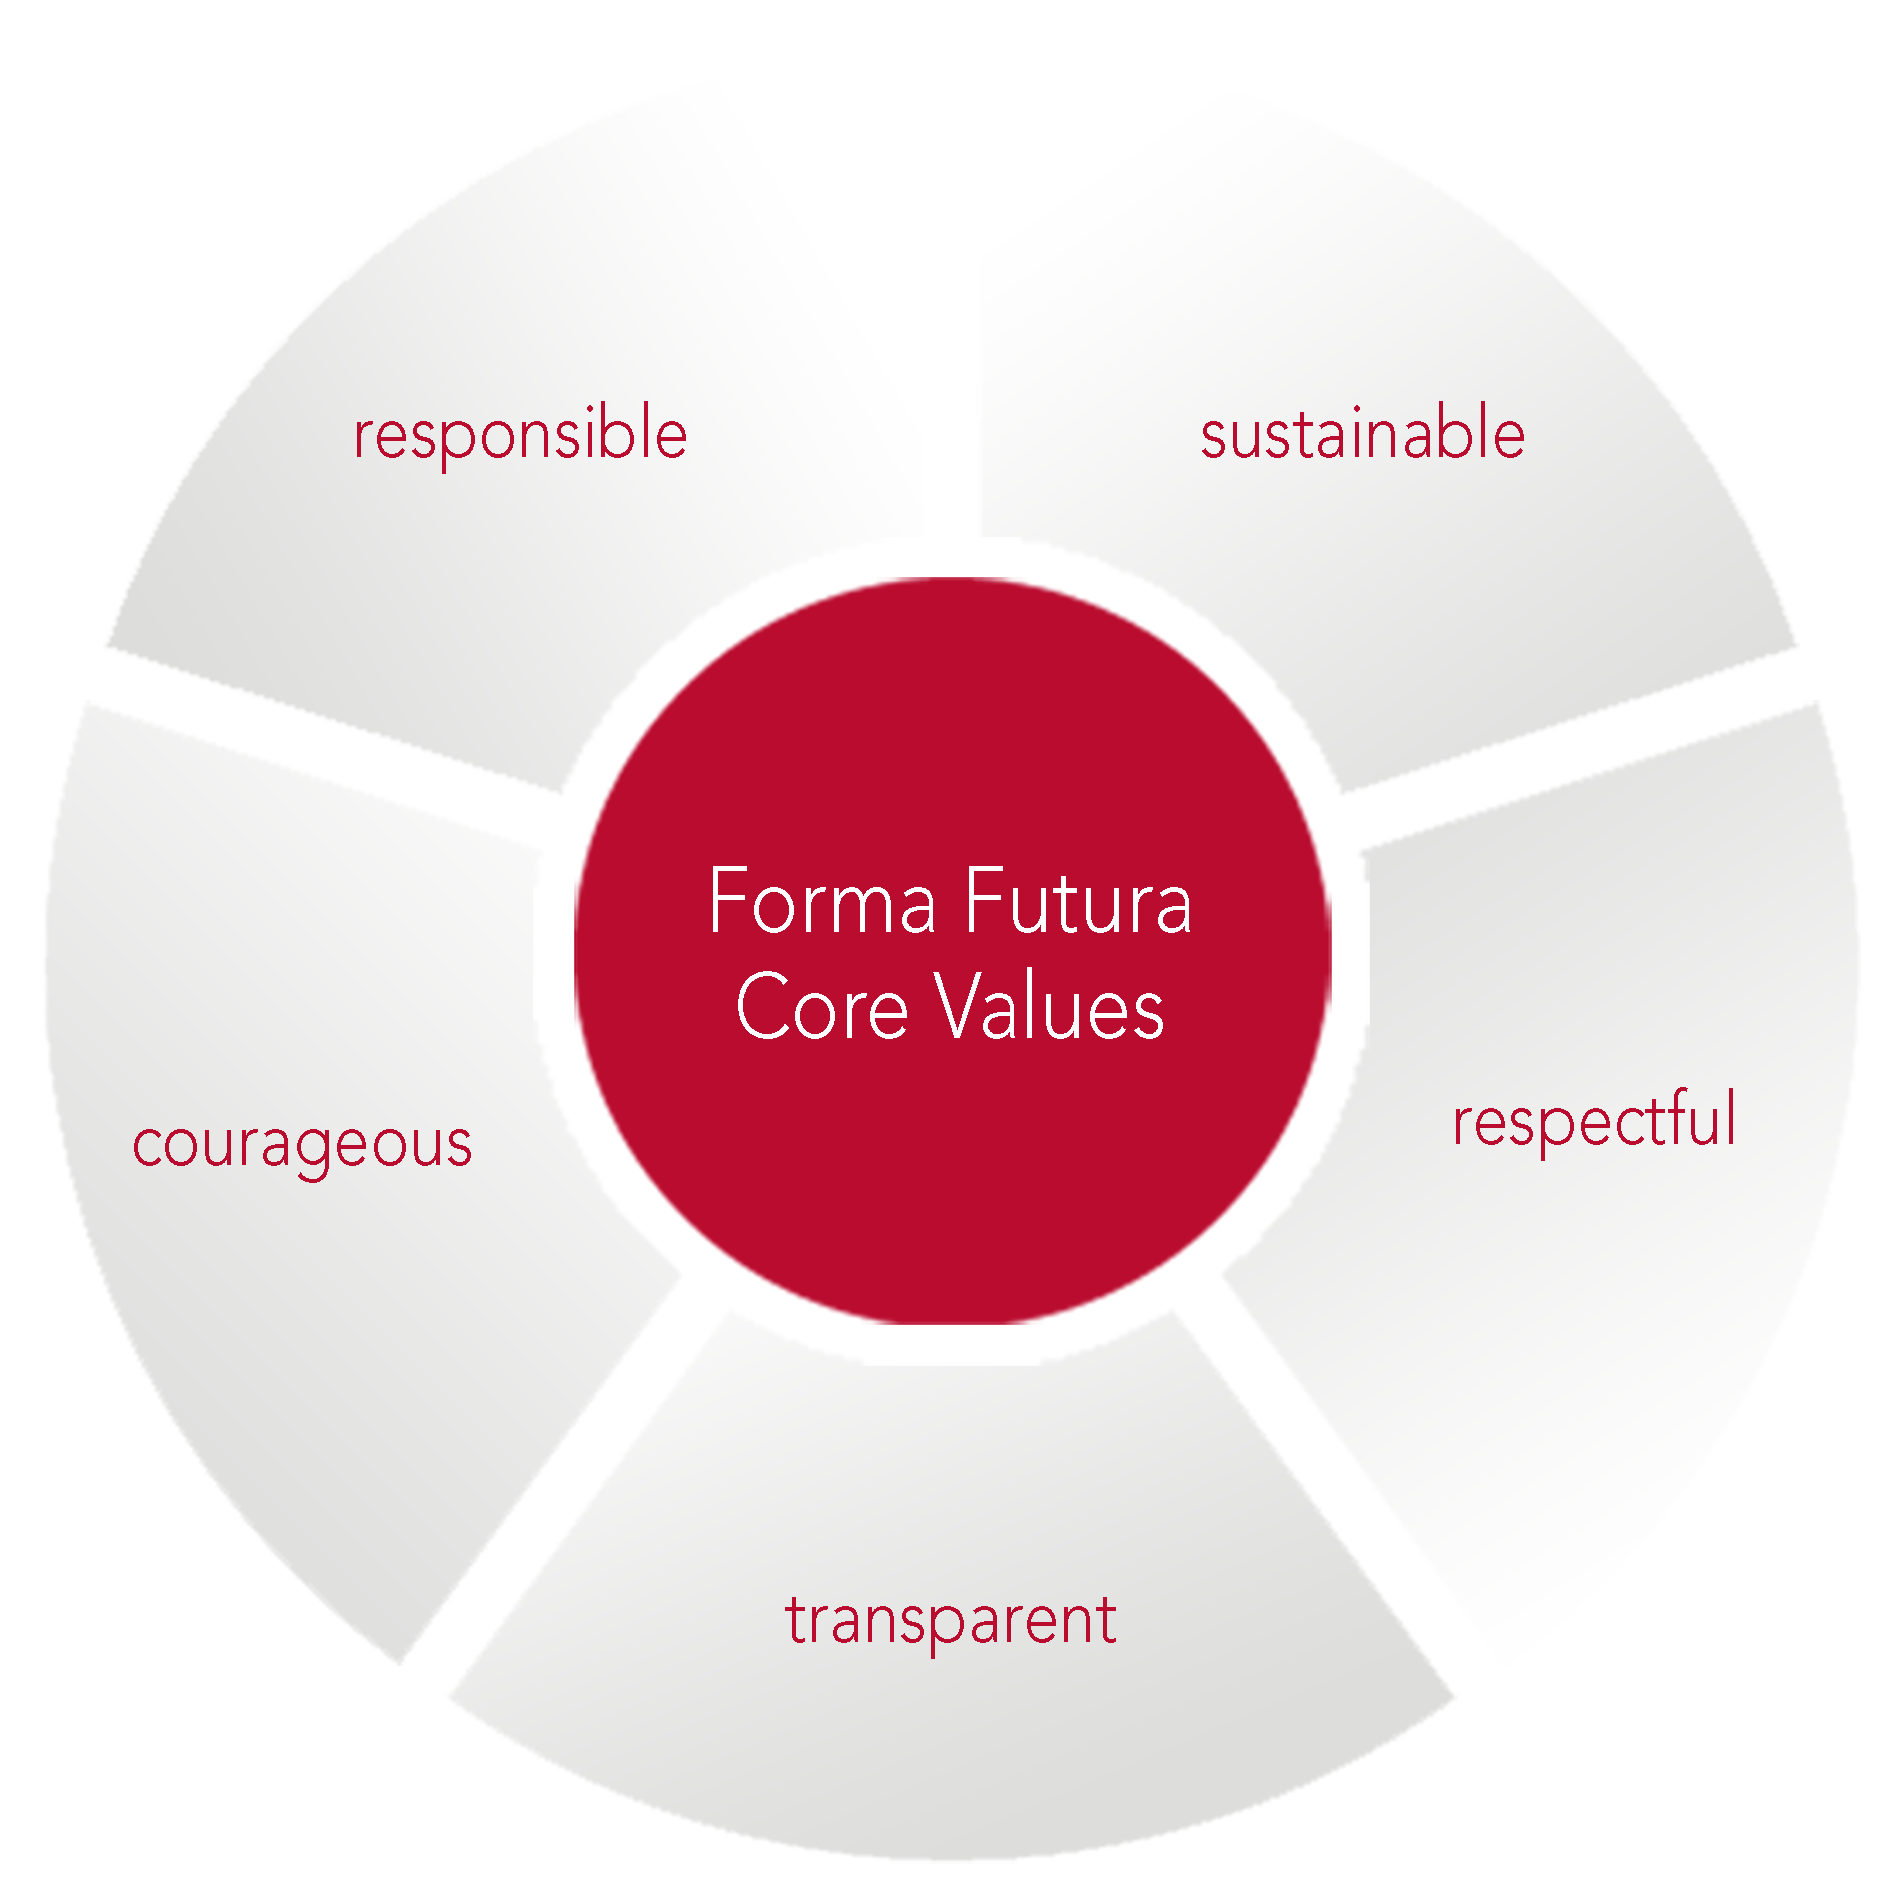 Forma Futura Core Values